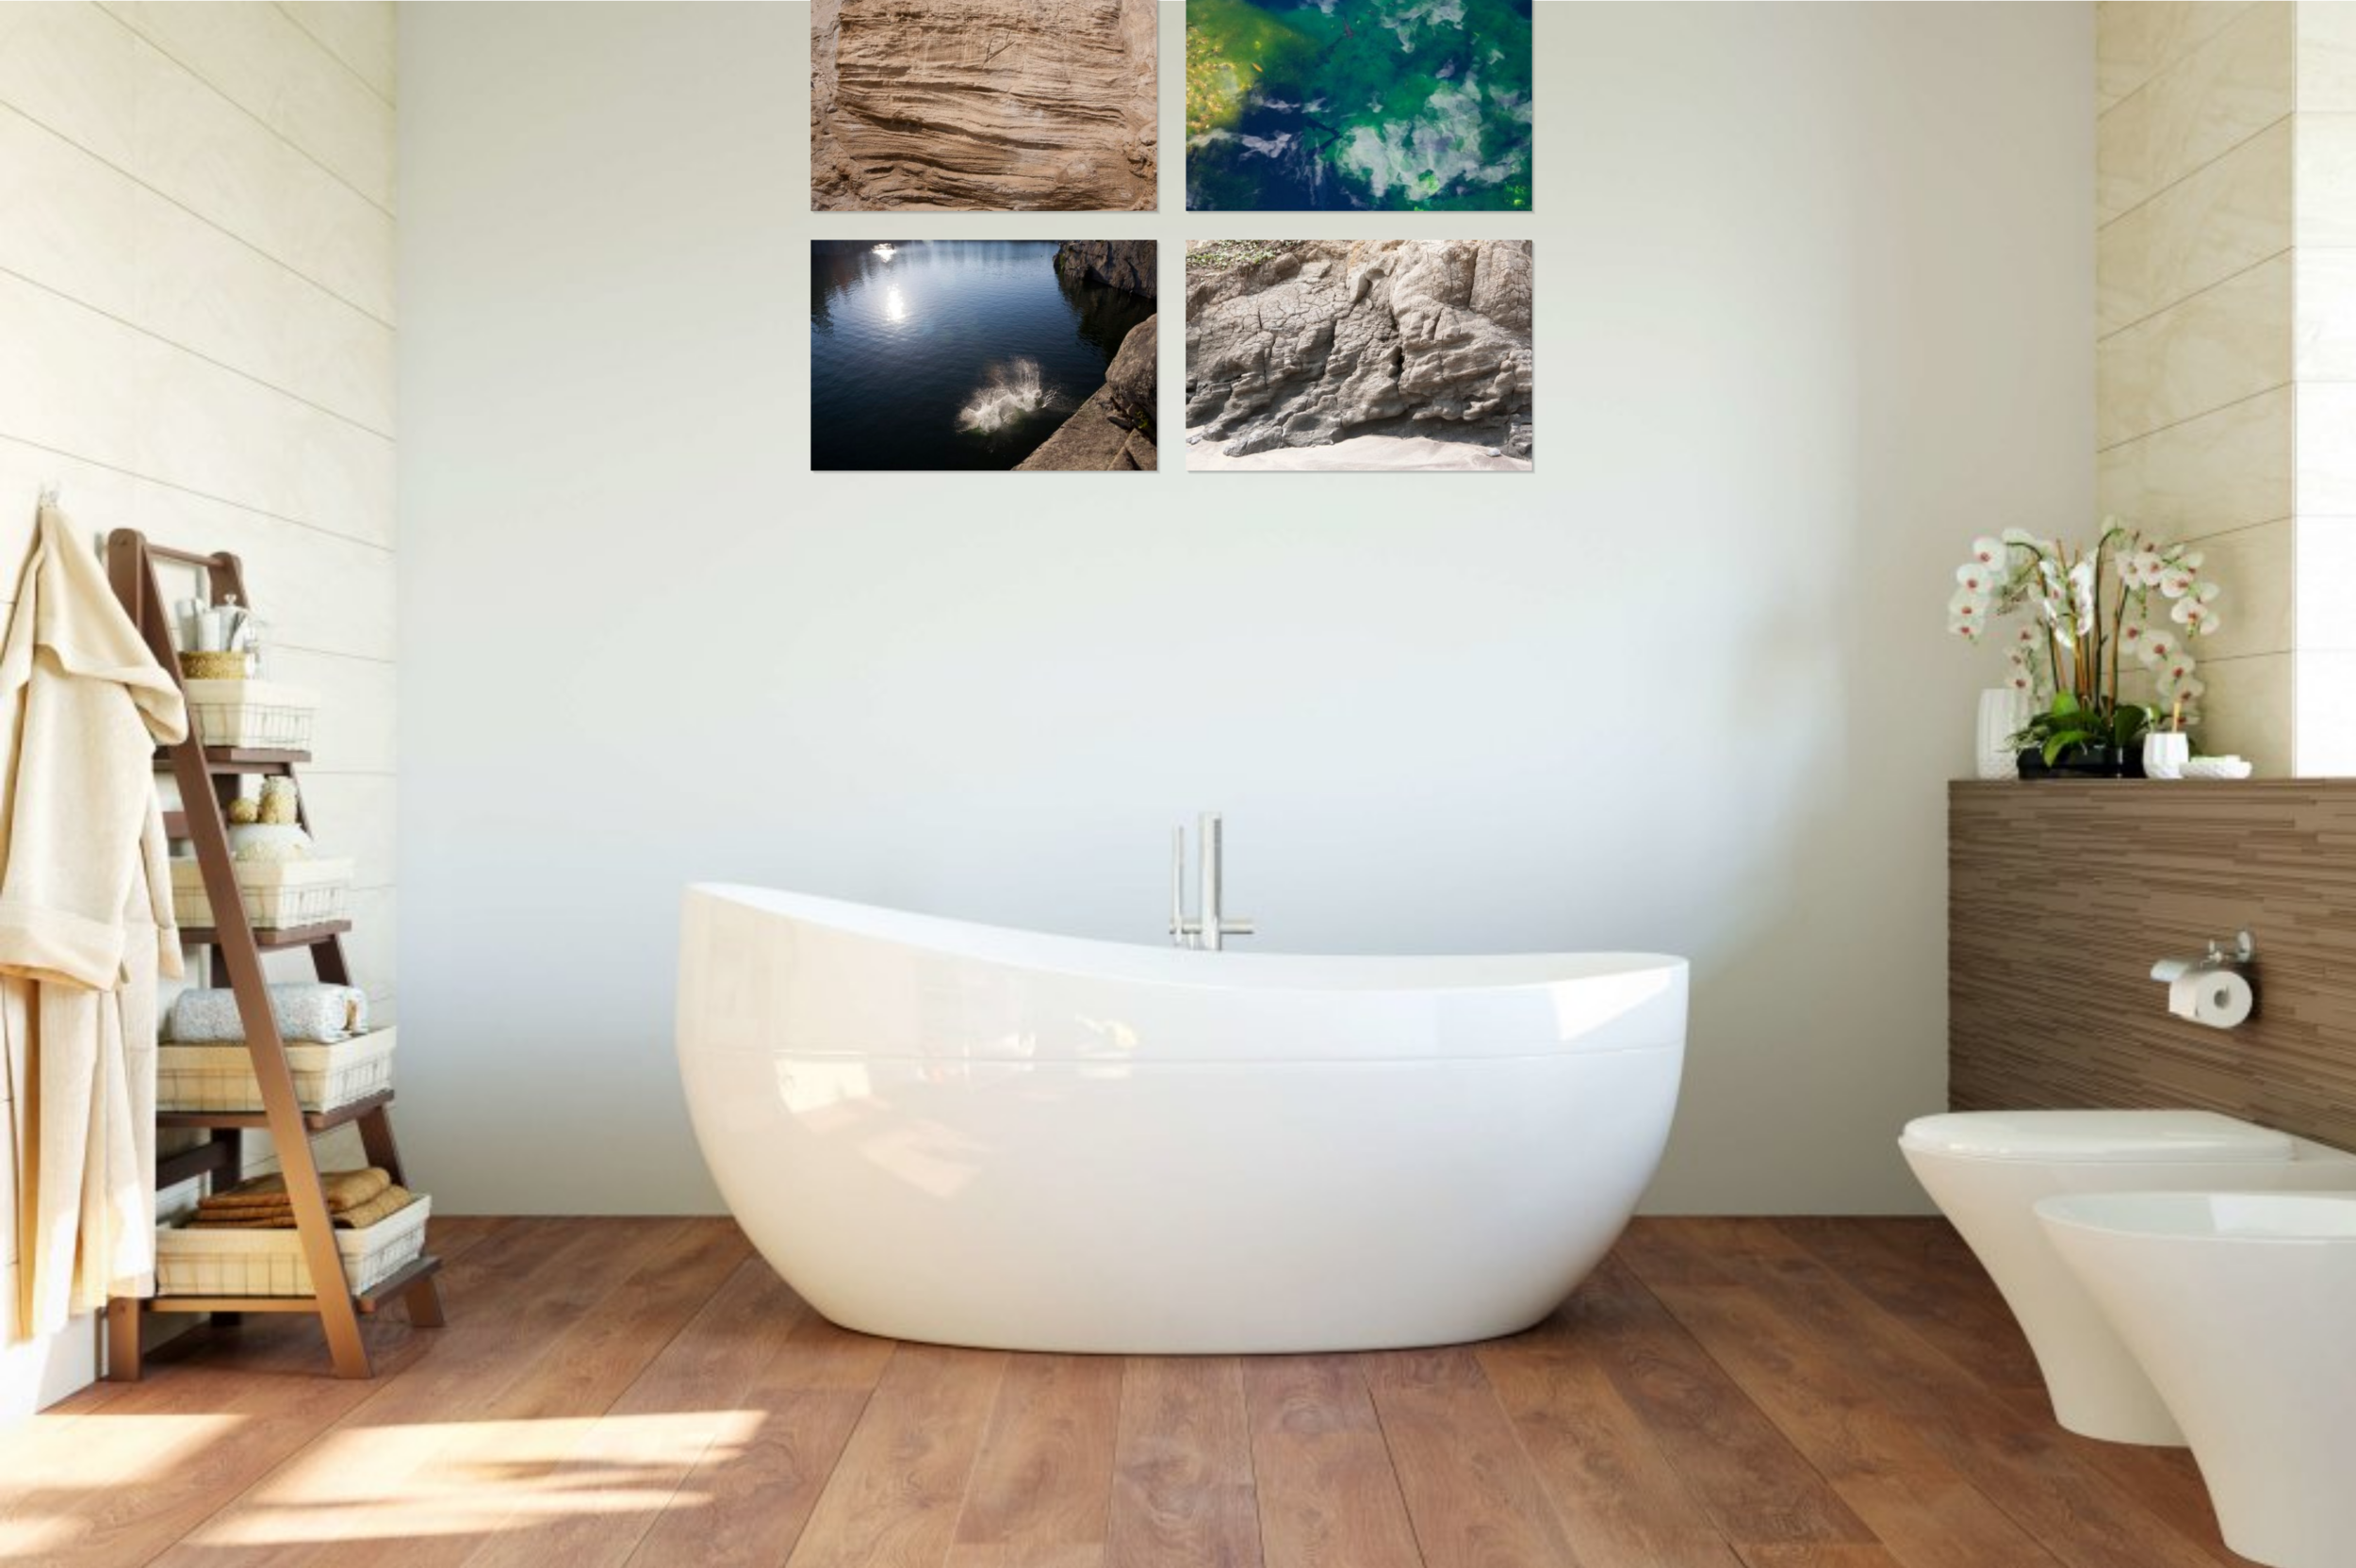 fengshui_wall_art_bathroom_4up.png